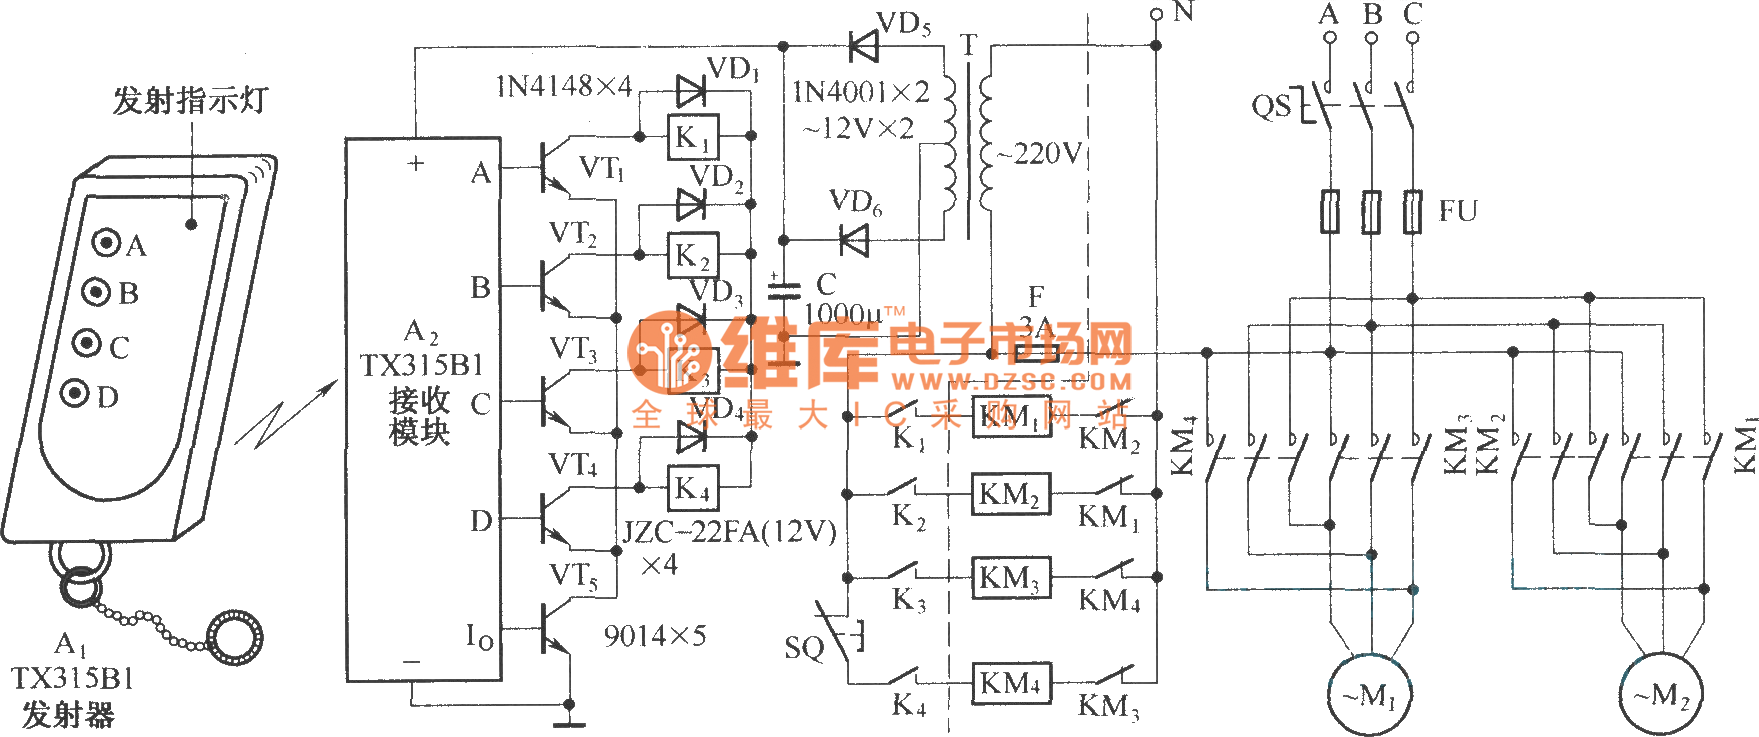 hight resolution of hoist control wiring diagram wiring diagram details hoist two controls wiring diagram